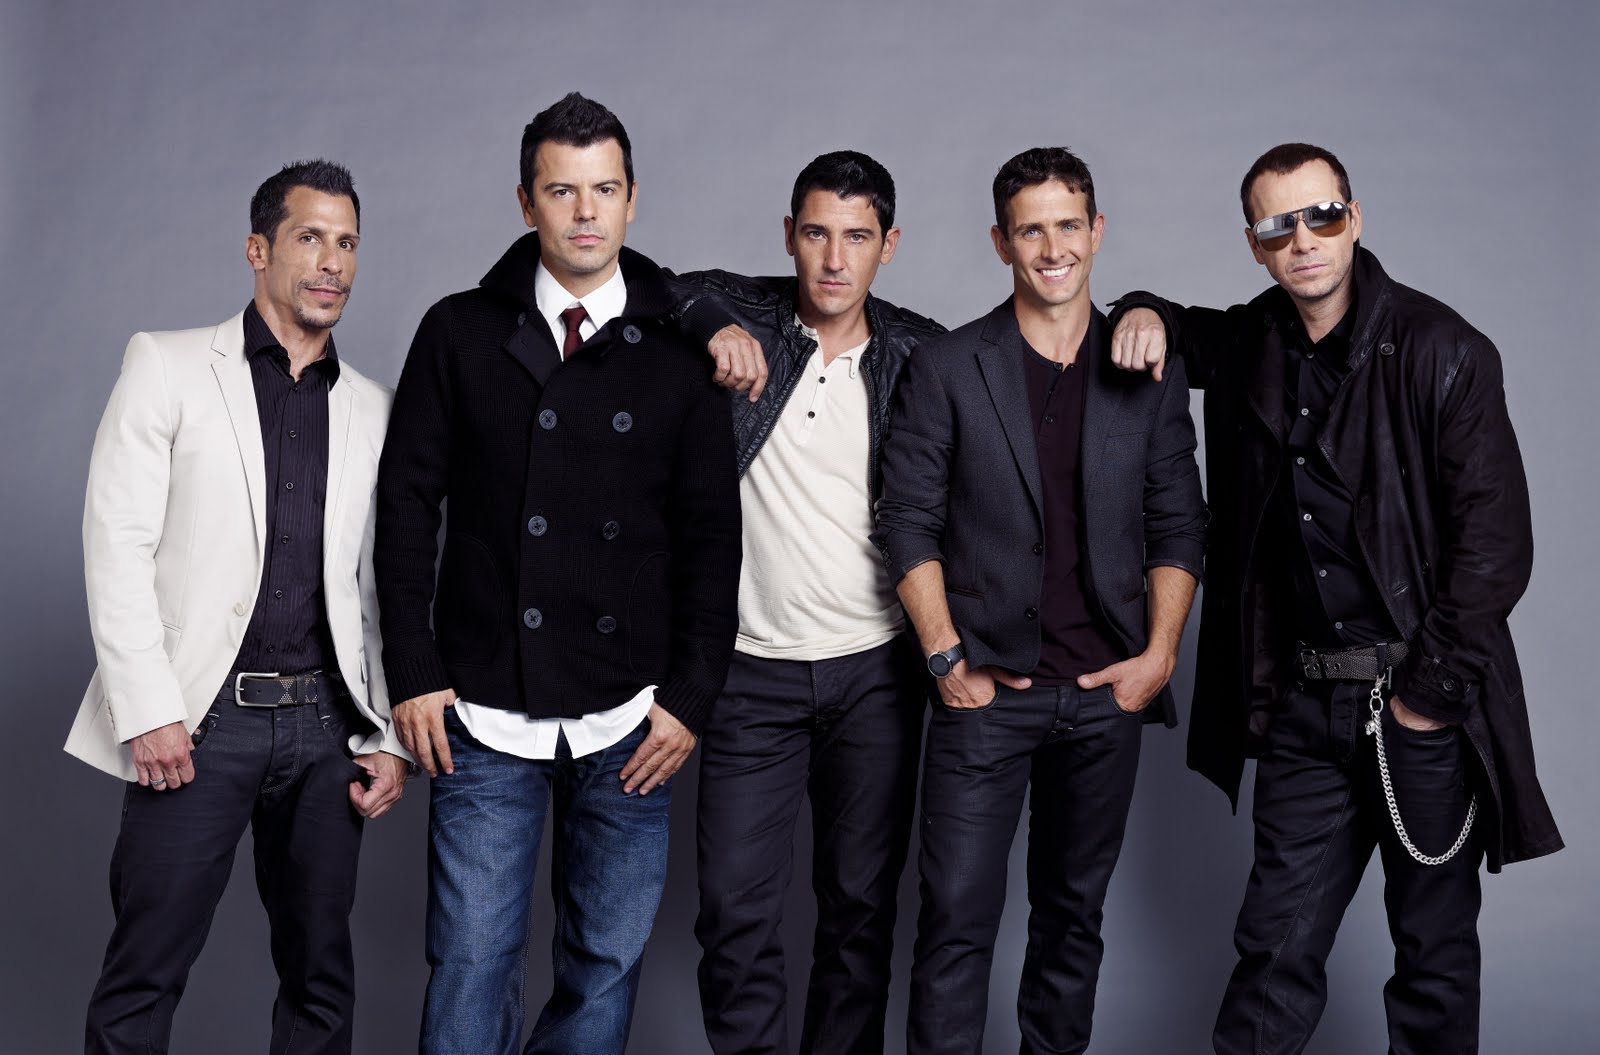 An introduction to the new kids on the block band